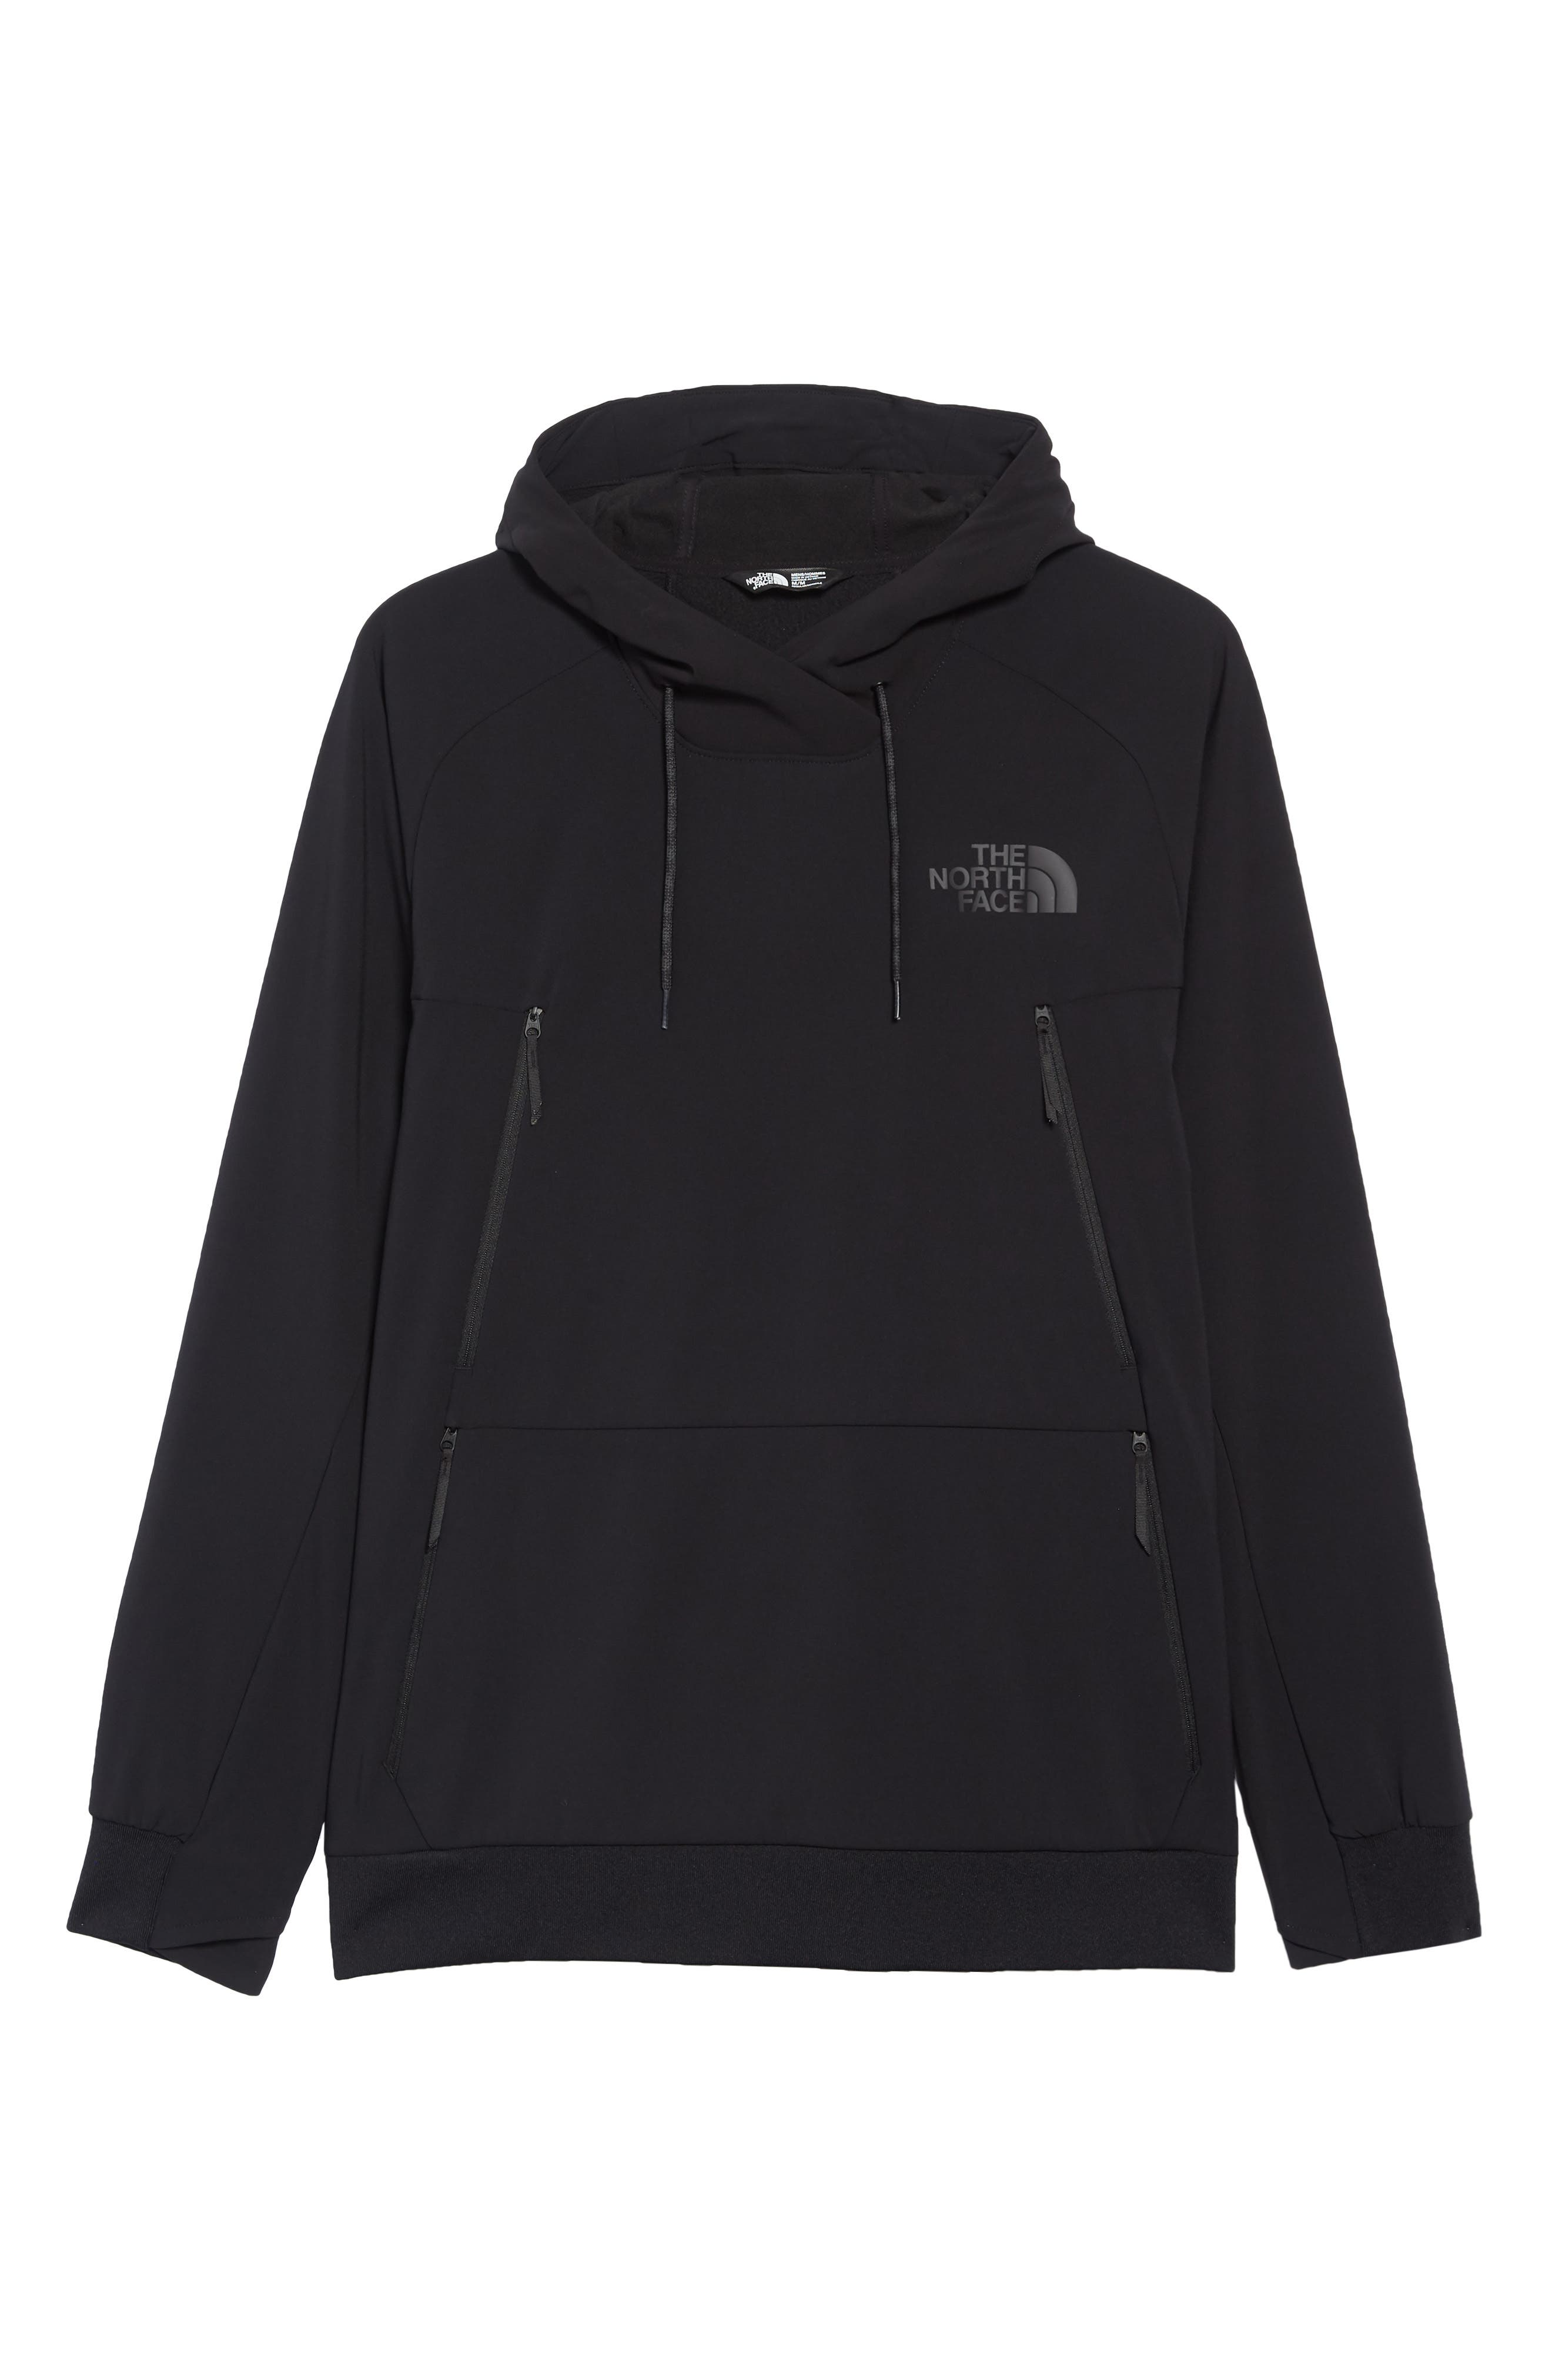 THE NORTH FACE, Tekno Pullover Hoodie, Alternate thumbnail 7, color, 001